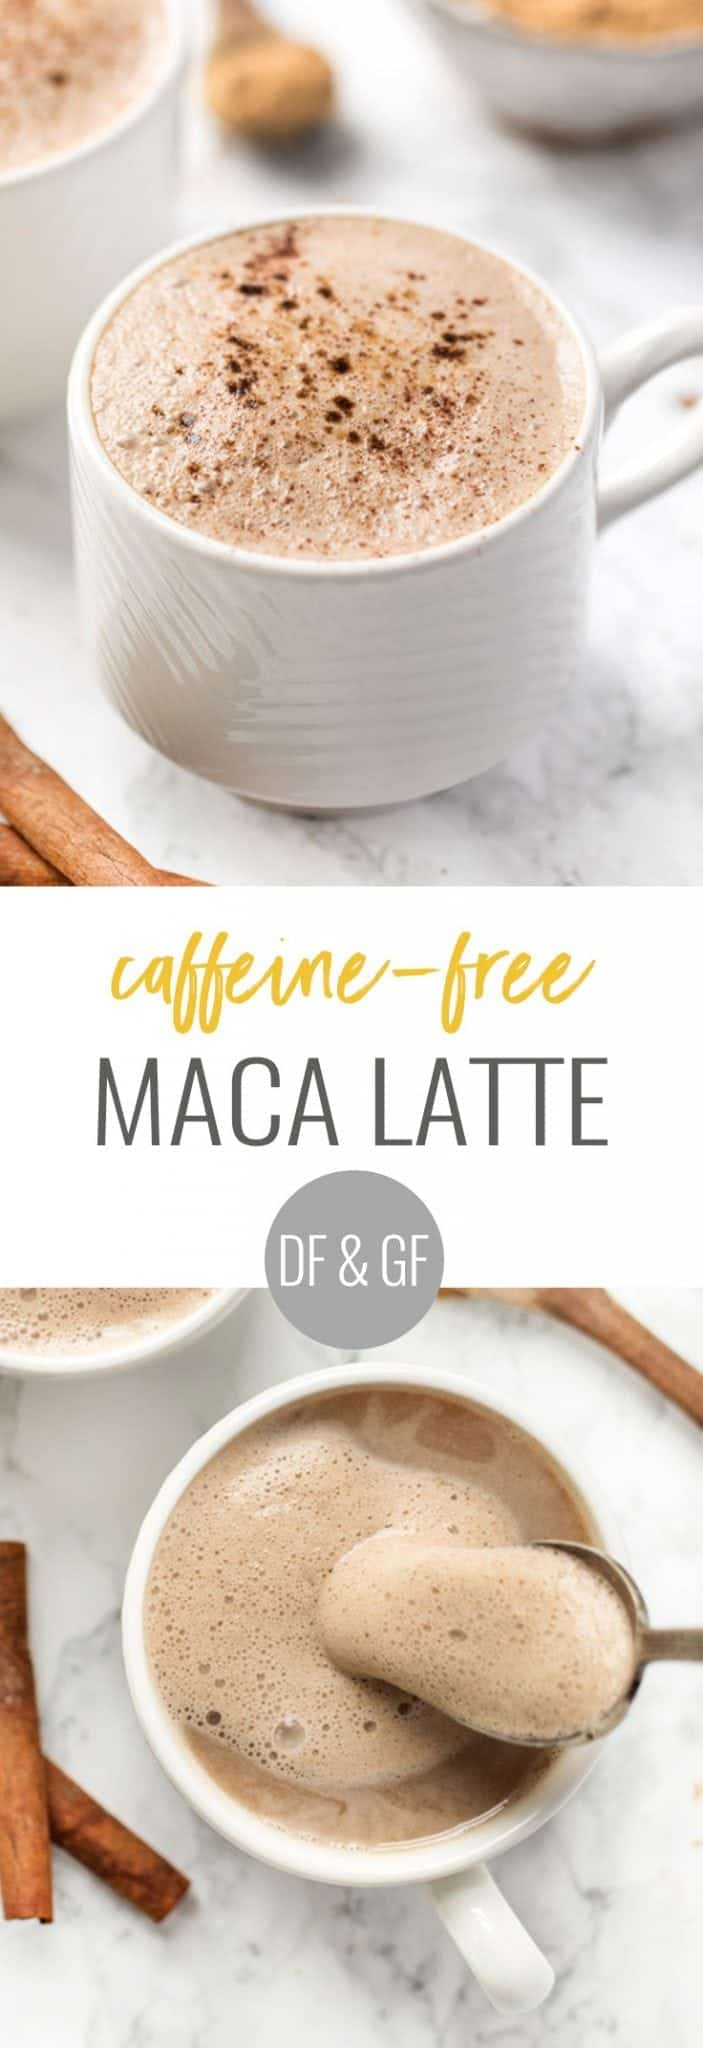 how to make a caffeine-free maca latte